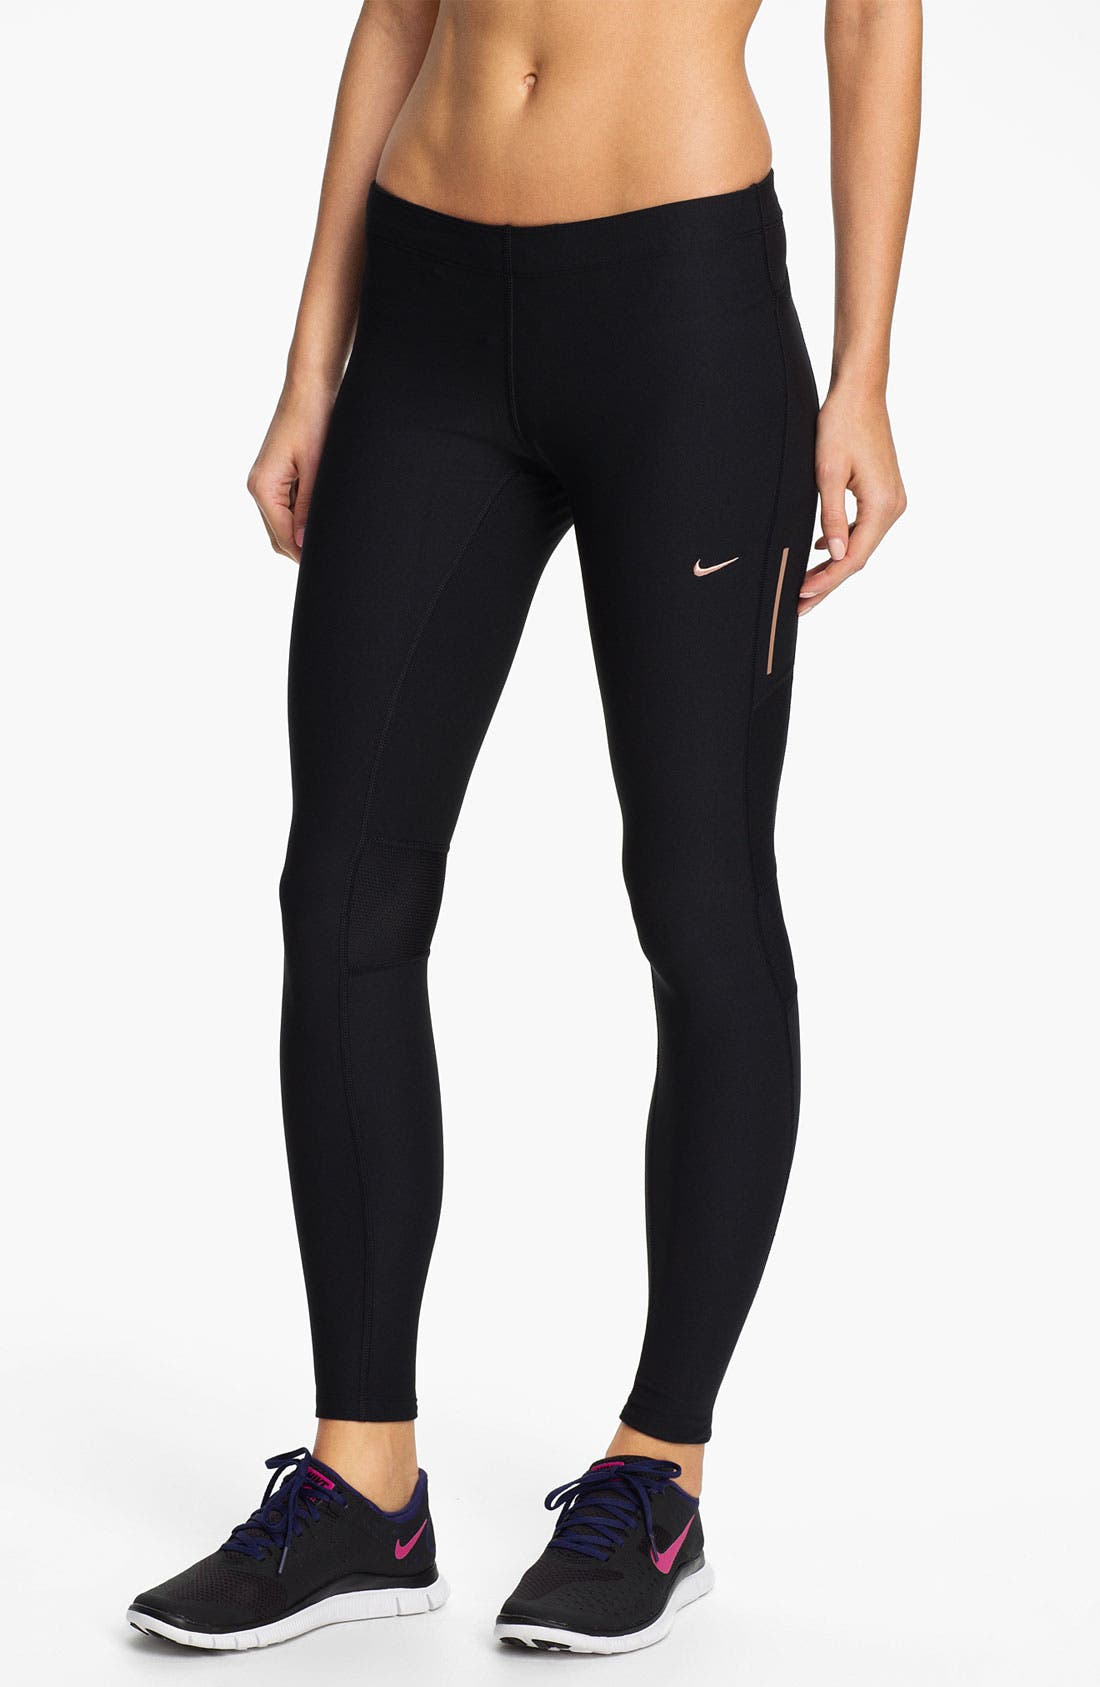 Alternate Image 1 Selected - Nike 'Tech' Tights